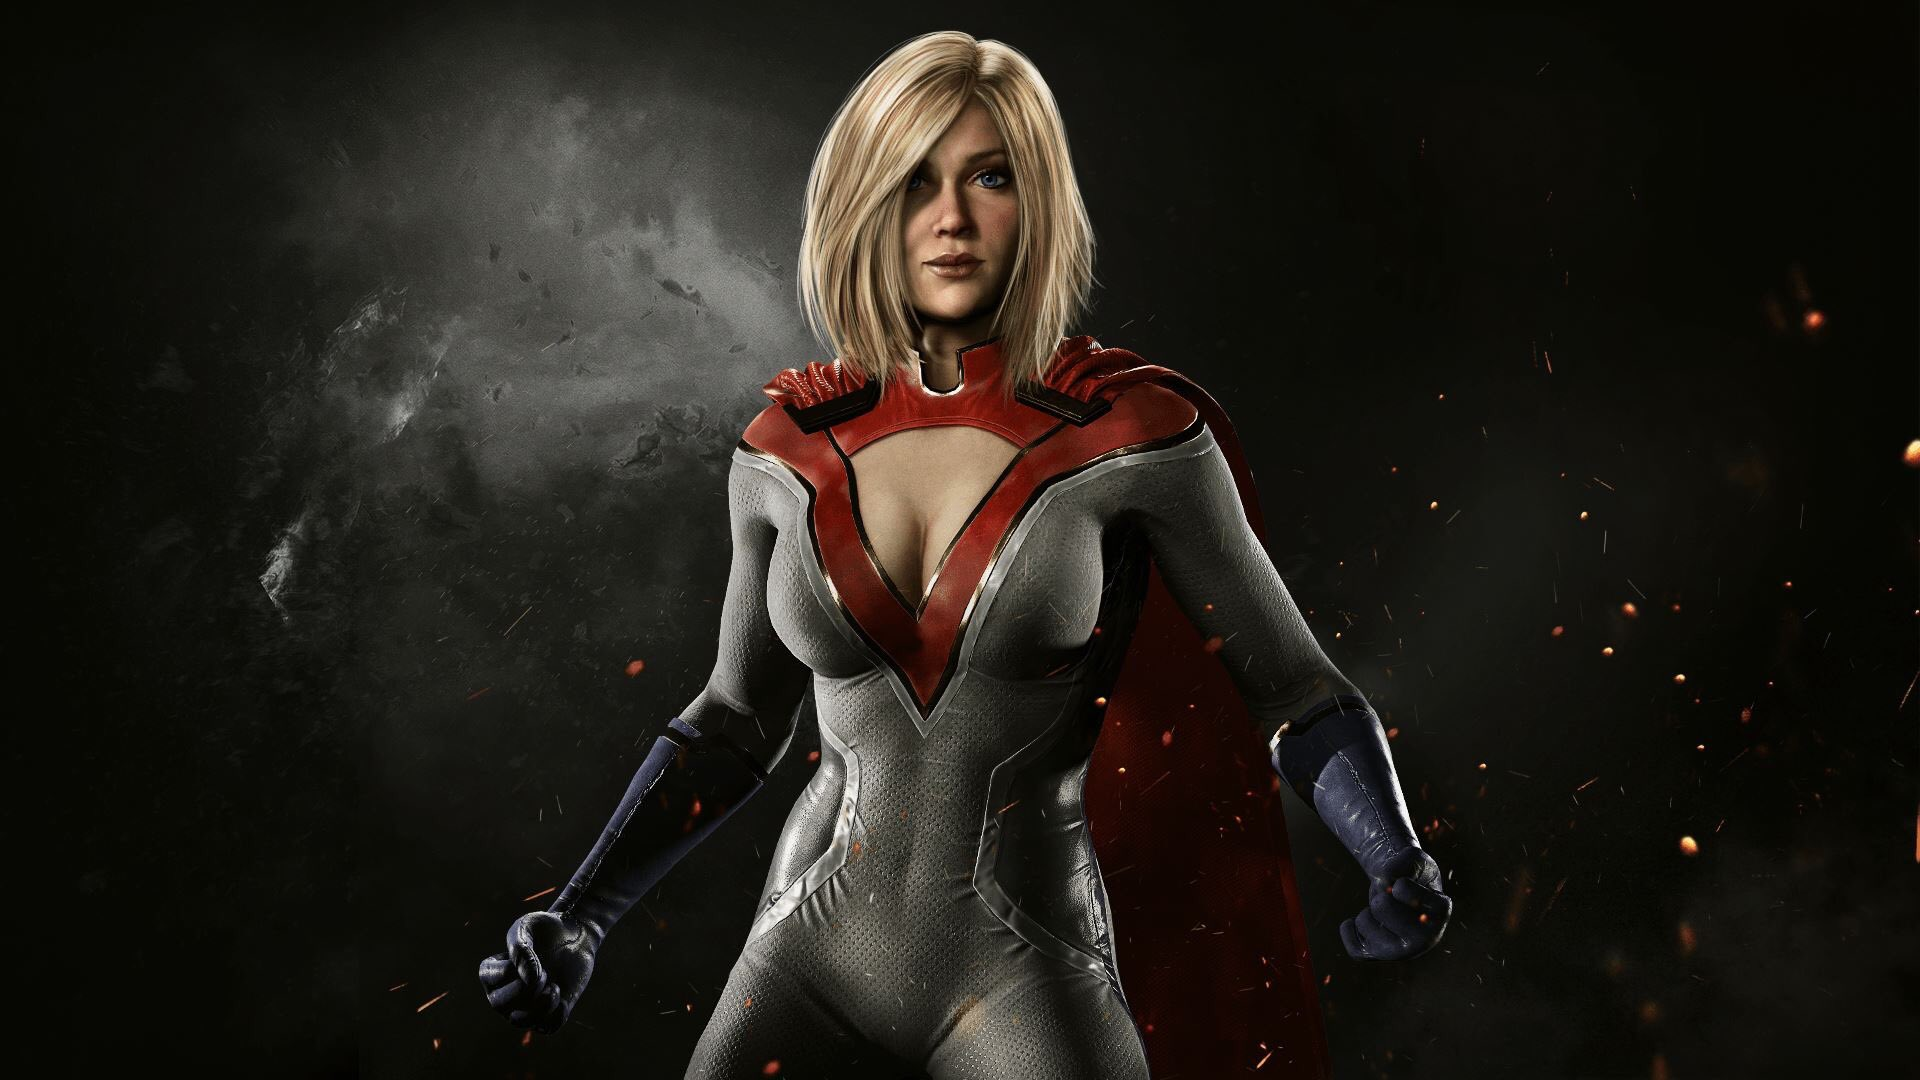 power girl injustice 2, hd games, 4k wallpapers, images, backgrounds